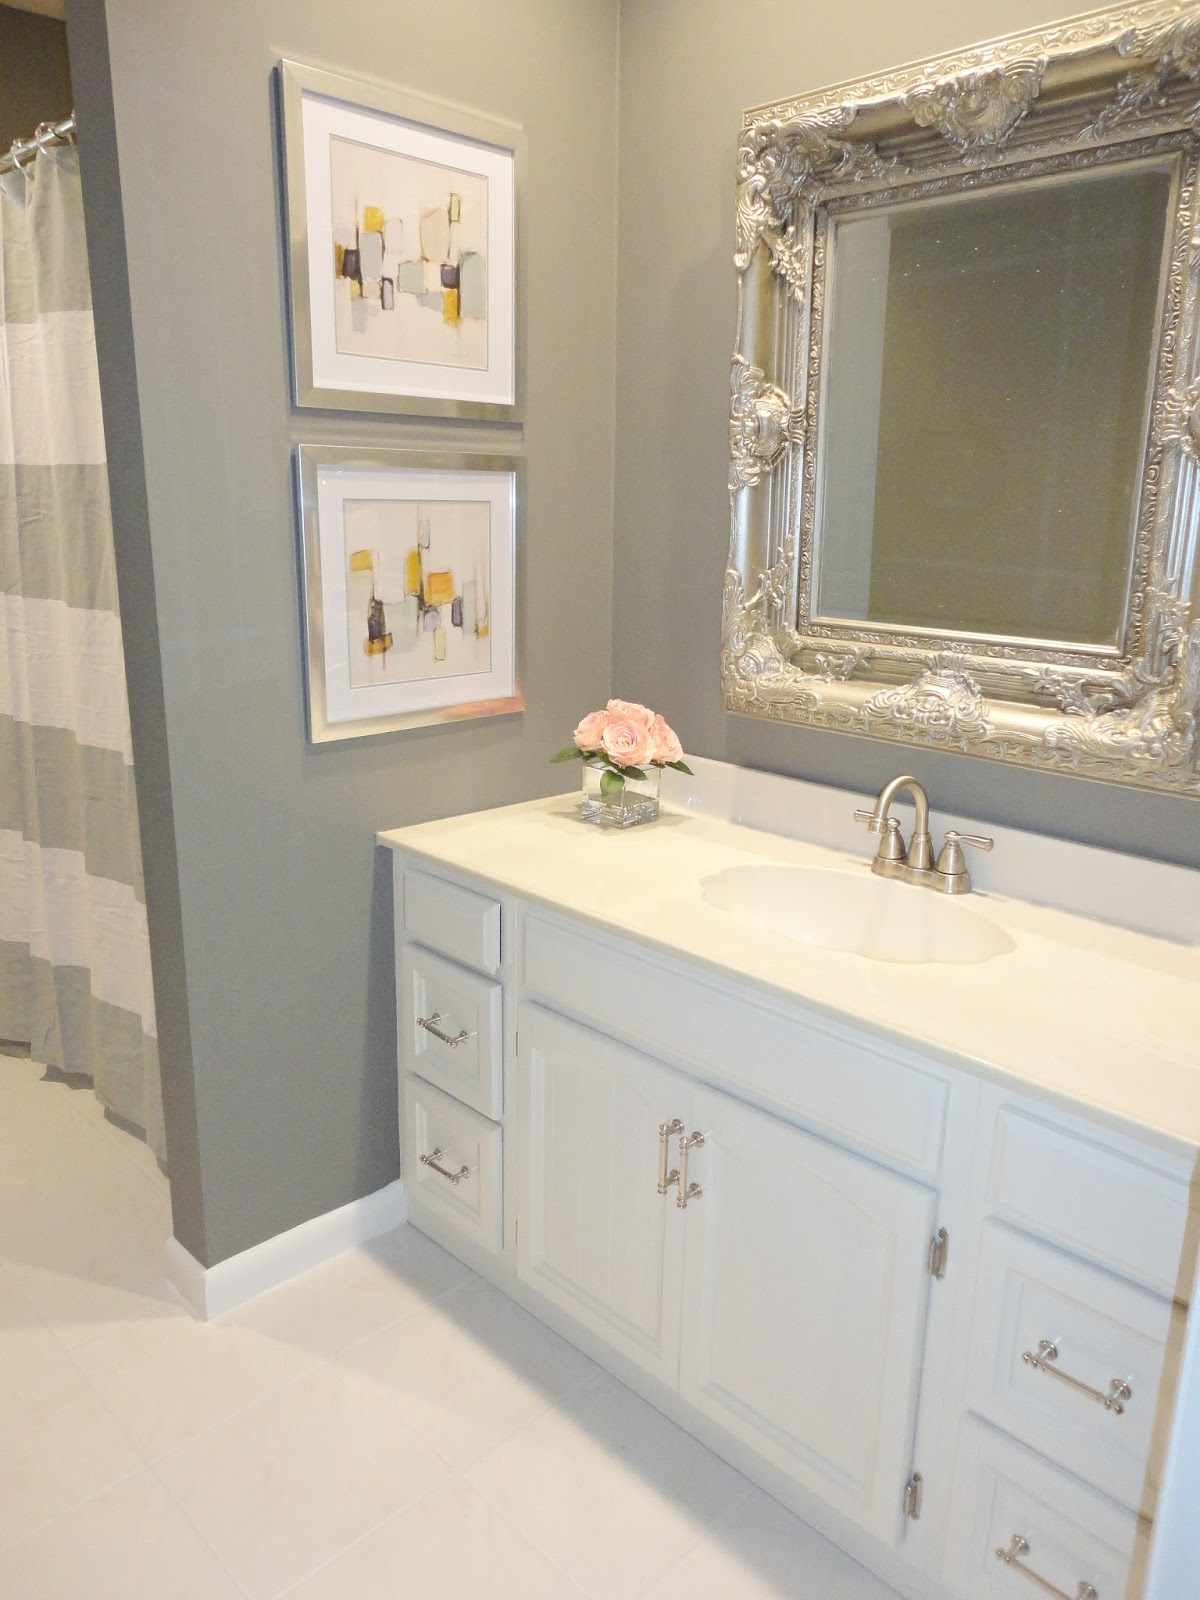 Livelovediy diy bathroom remodel on a budget Remodeling your bathroom on a budget